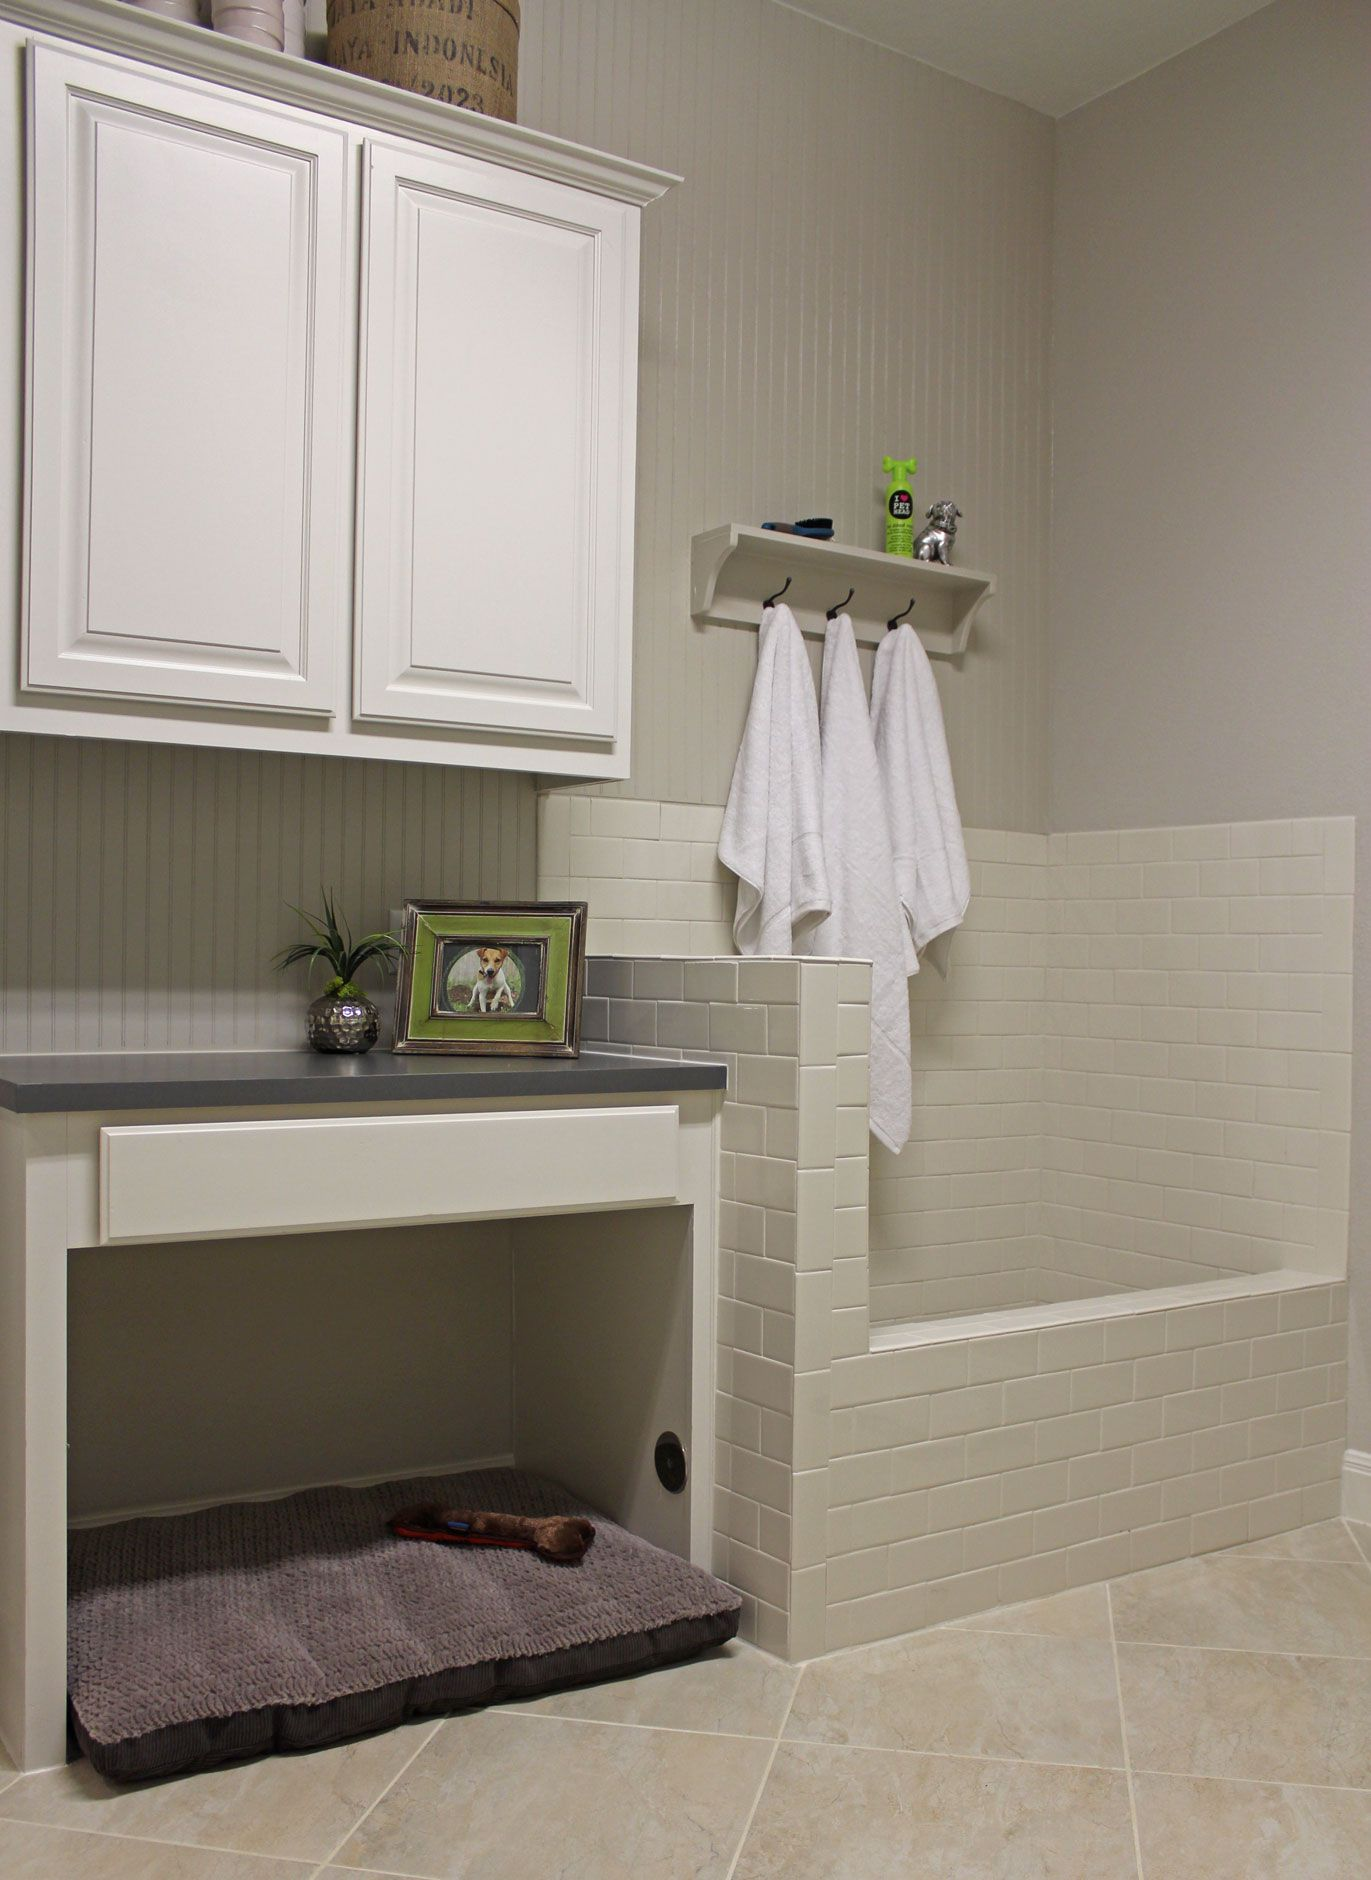 Laundry Room Cabinet 6 | Dog shower, Dog beds and Laundry rooms